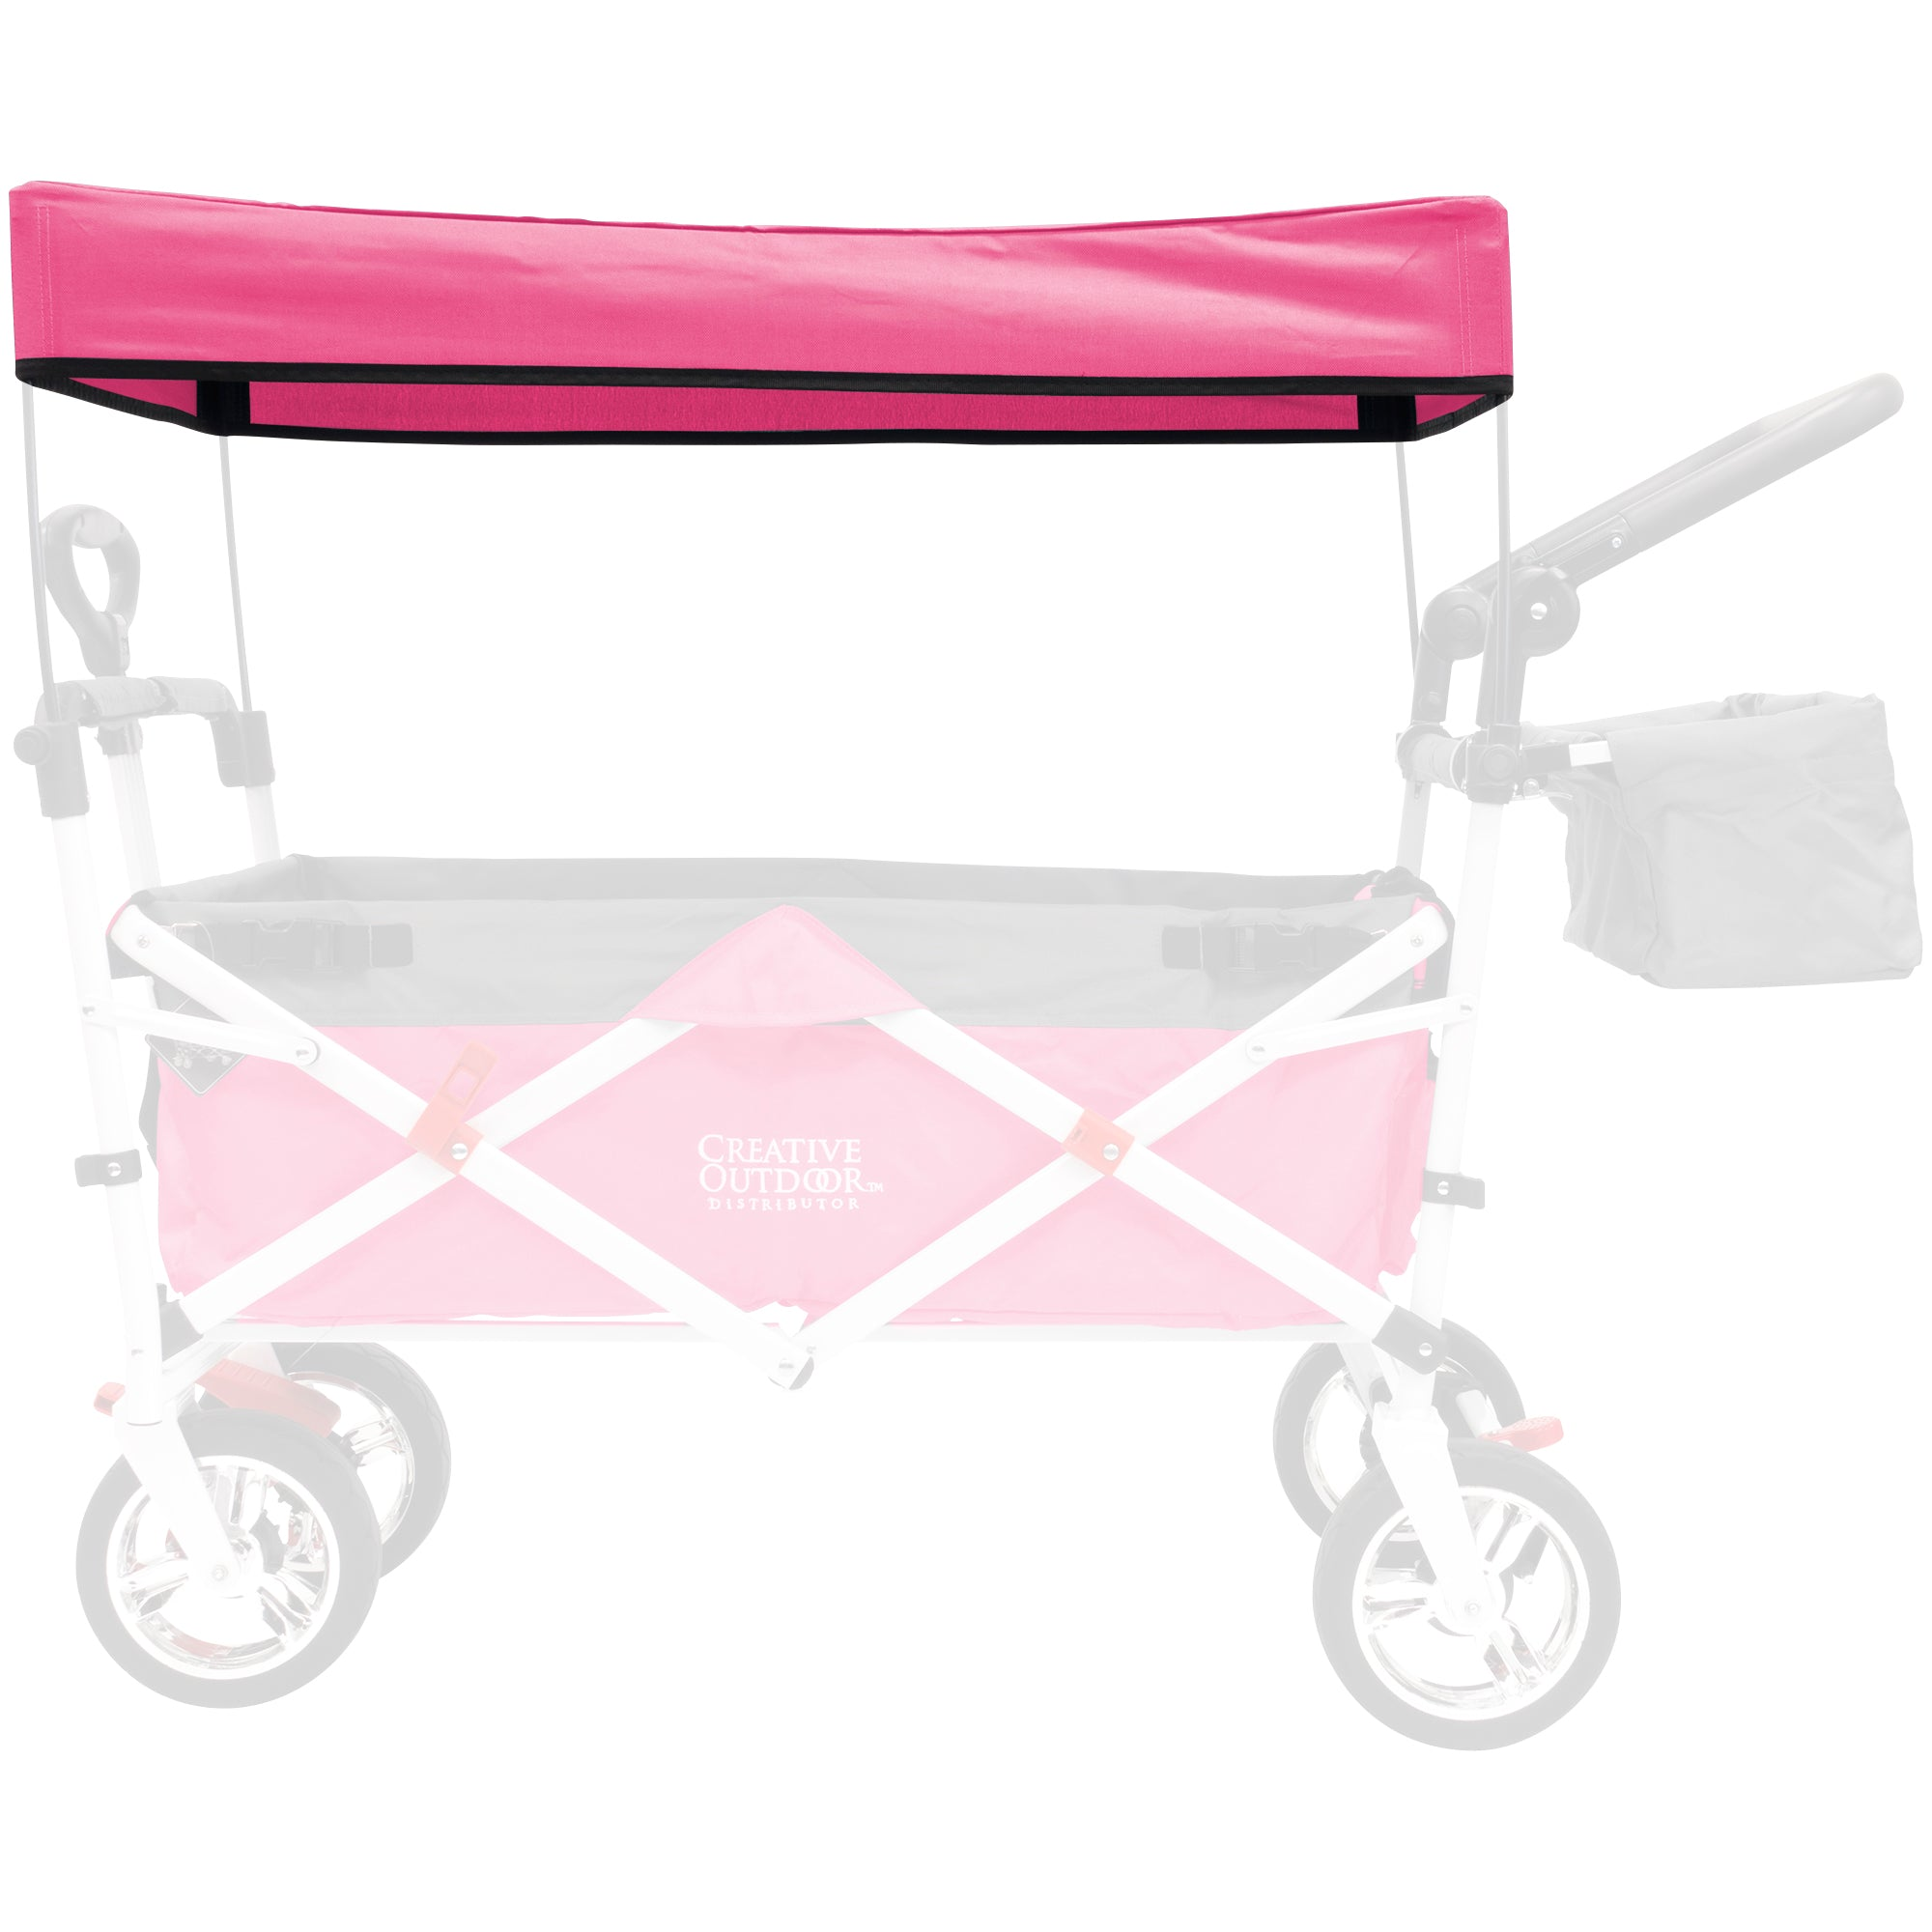 Silver Series Push Pull Folding Wagon Teal Replacement Canopy - Pink